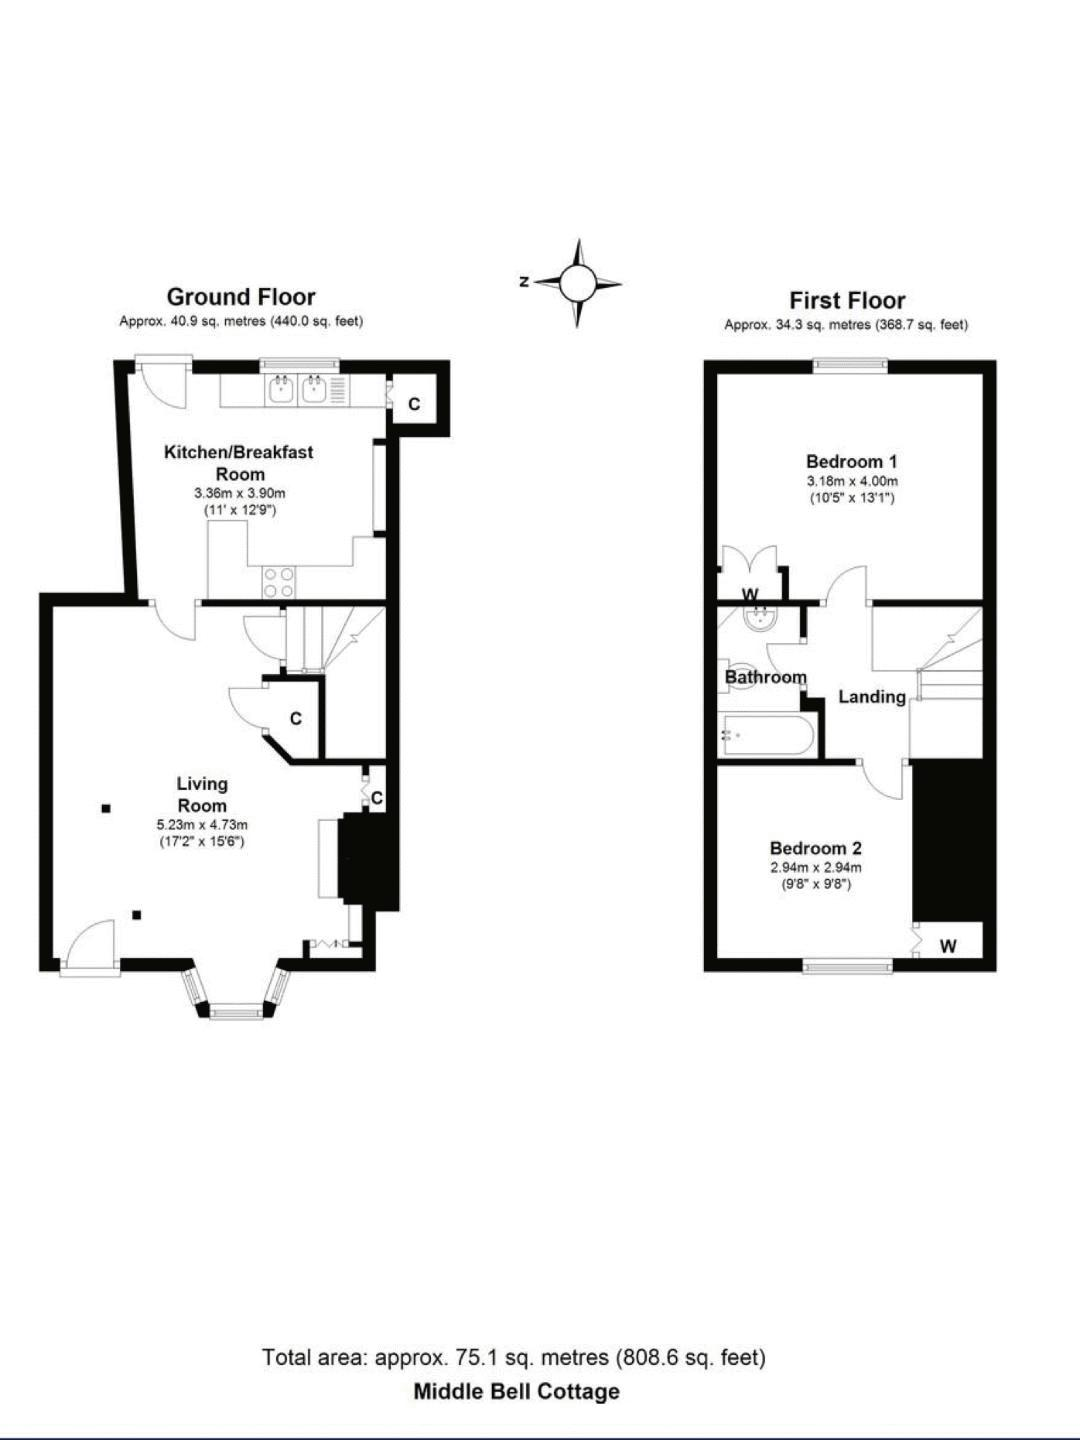 Middle Bell Cottage, Tanworth-in-Arden. Floorplan.